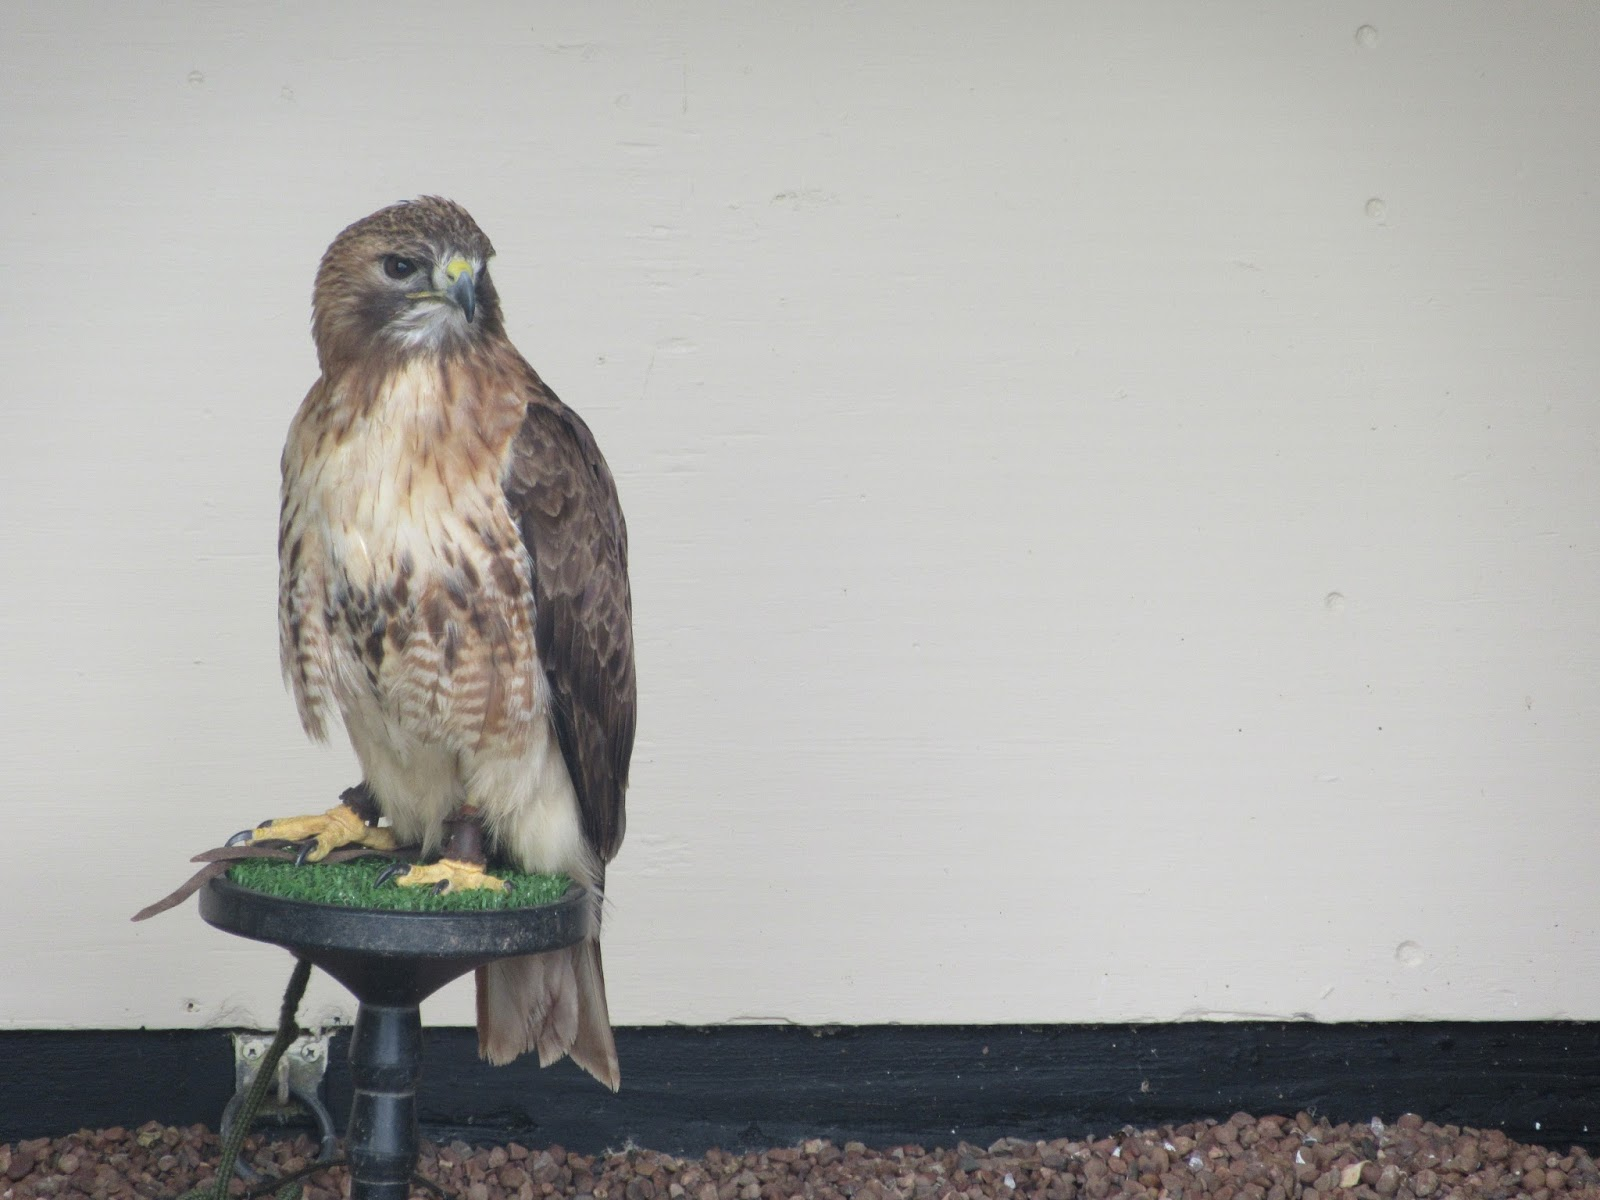 A red tailed buzzard